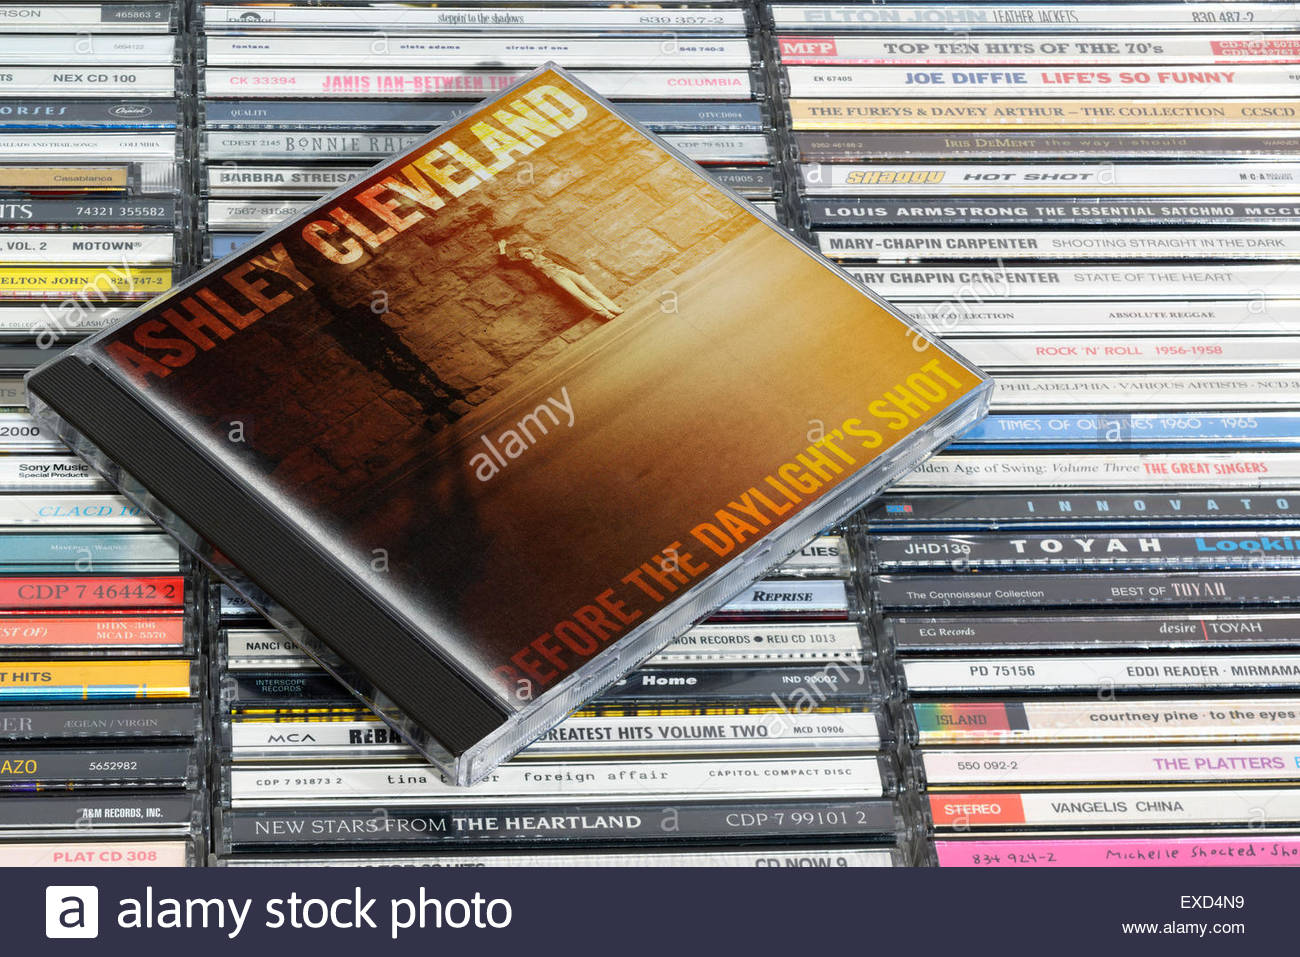 Ashley Cleveland 2006 Before the Daylight's Shot, album, piled music CD cases, England - Stock Image